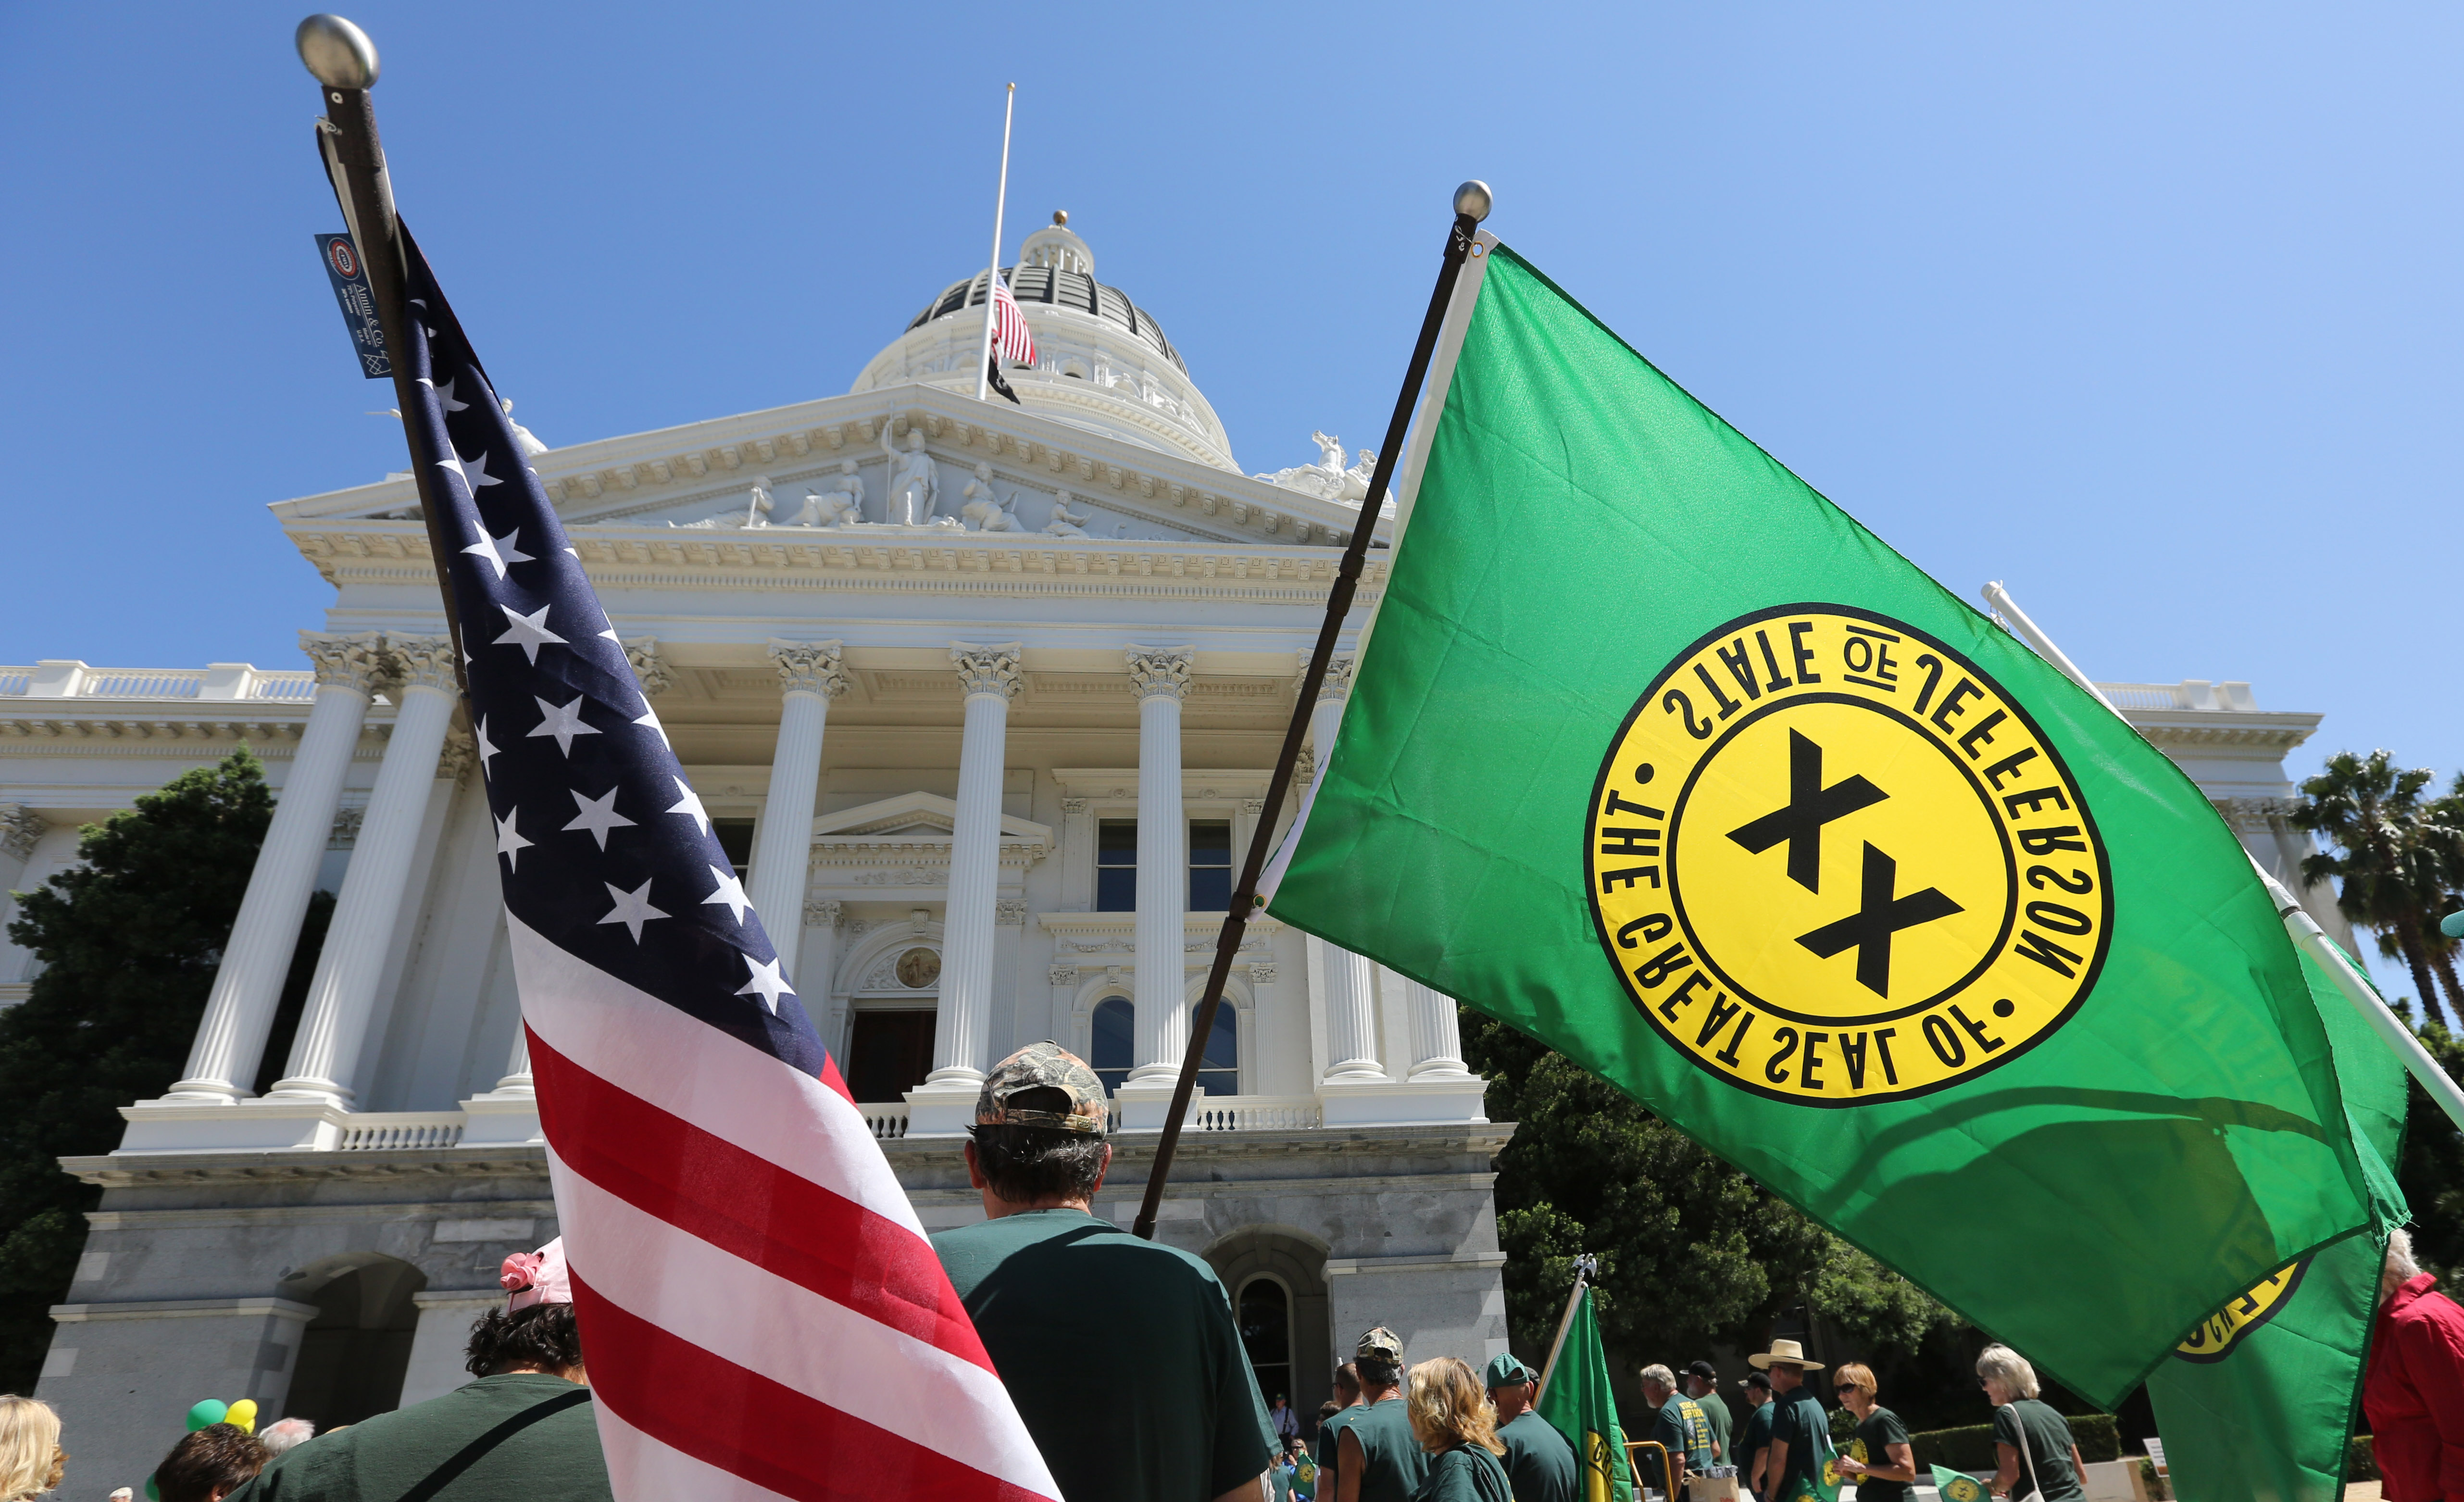 Secessionists exploit red states' 'deep hatred for California' in bid to exit union